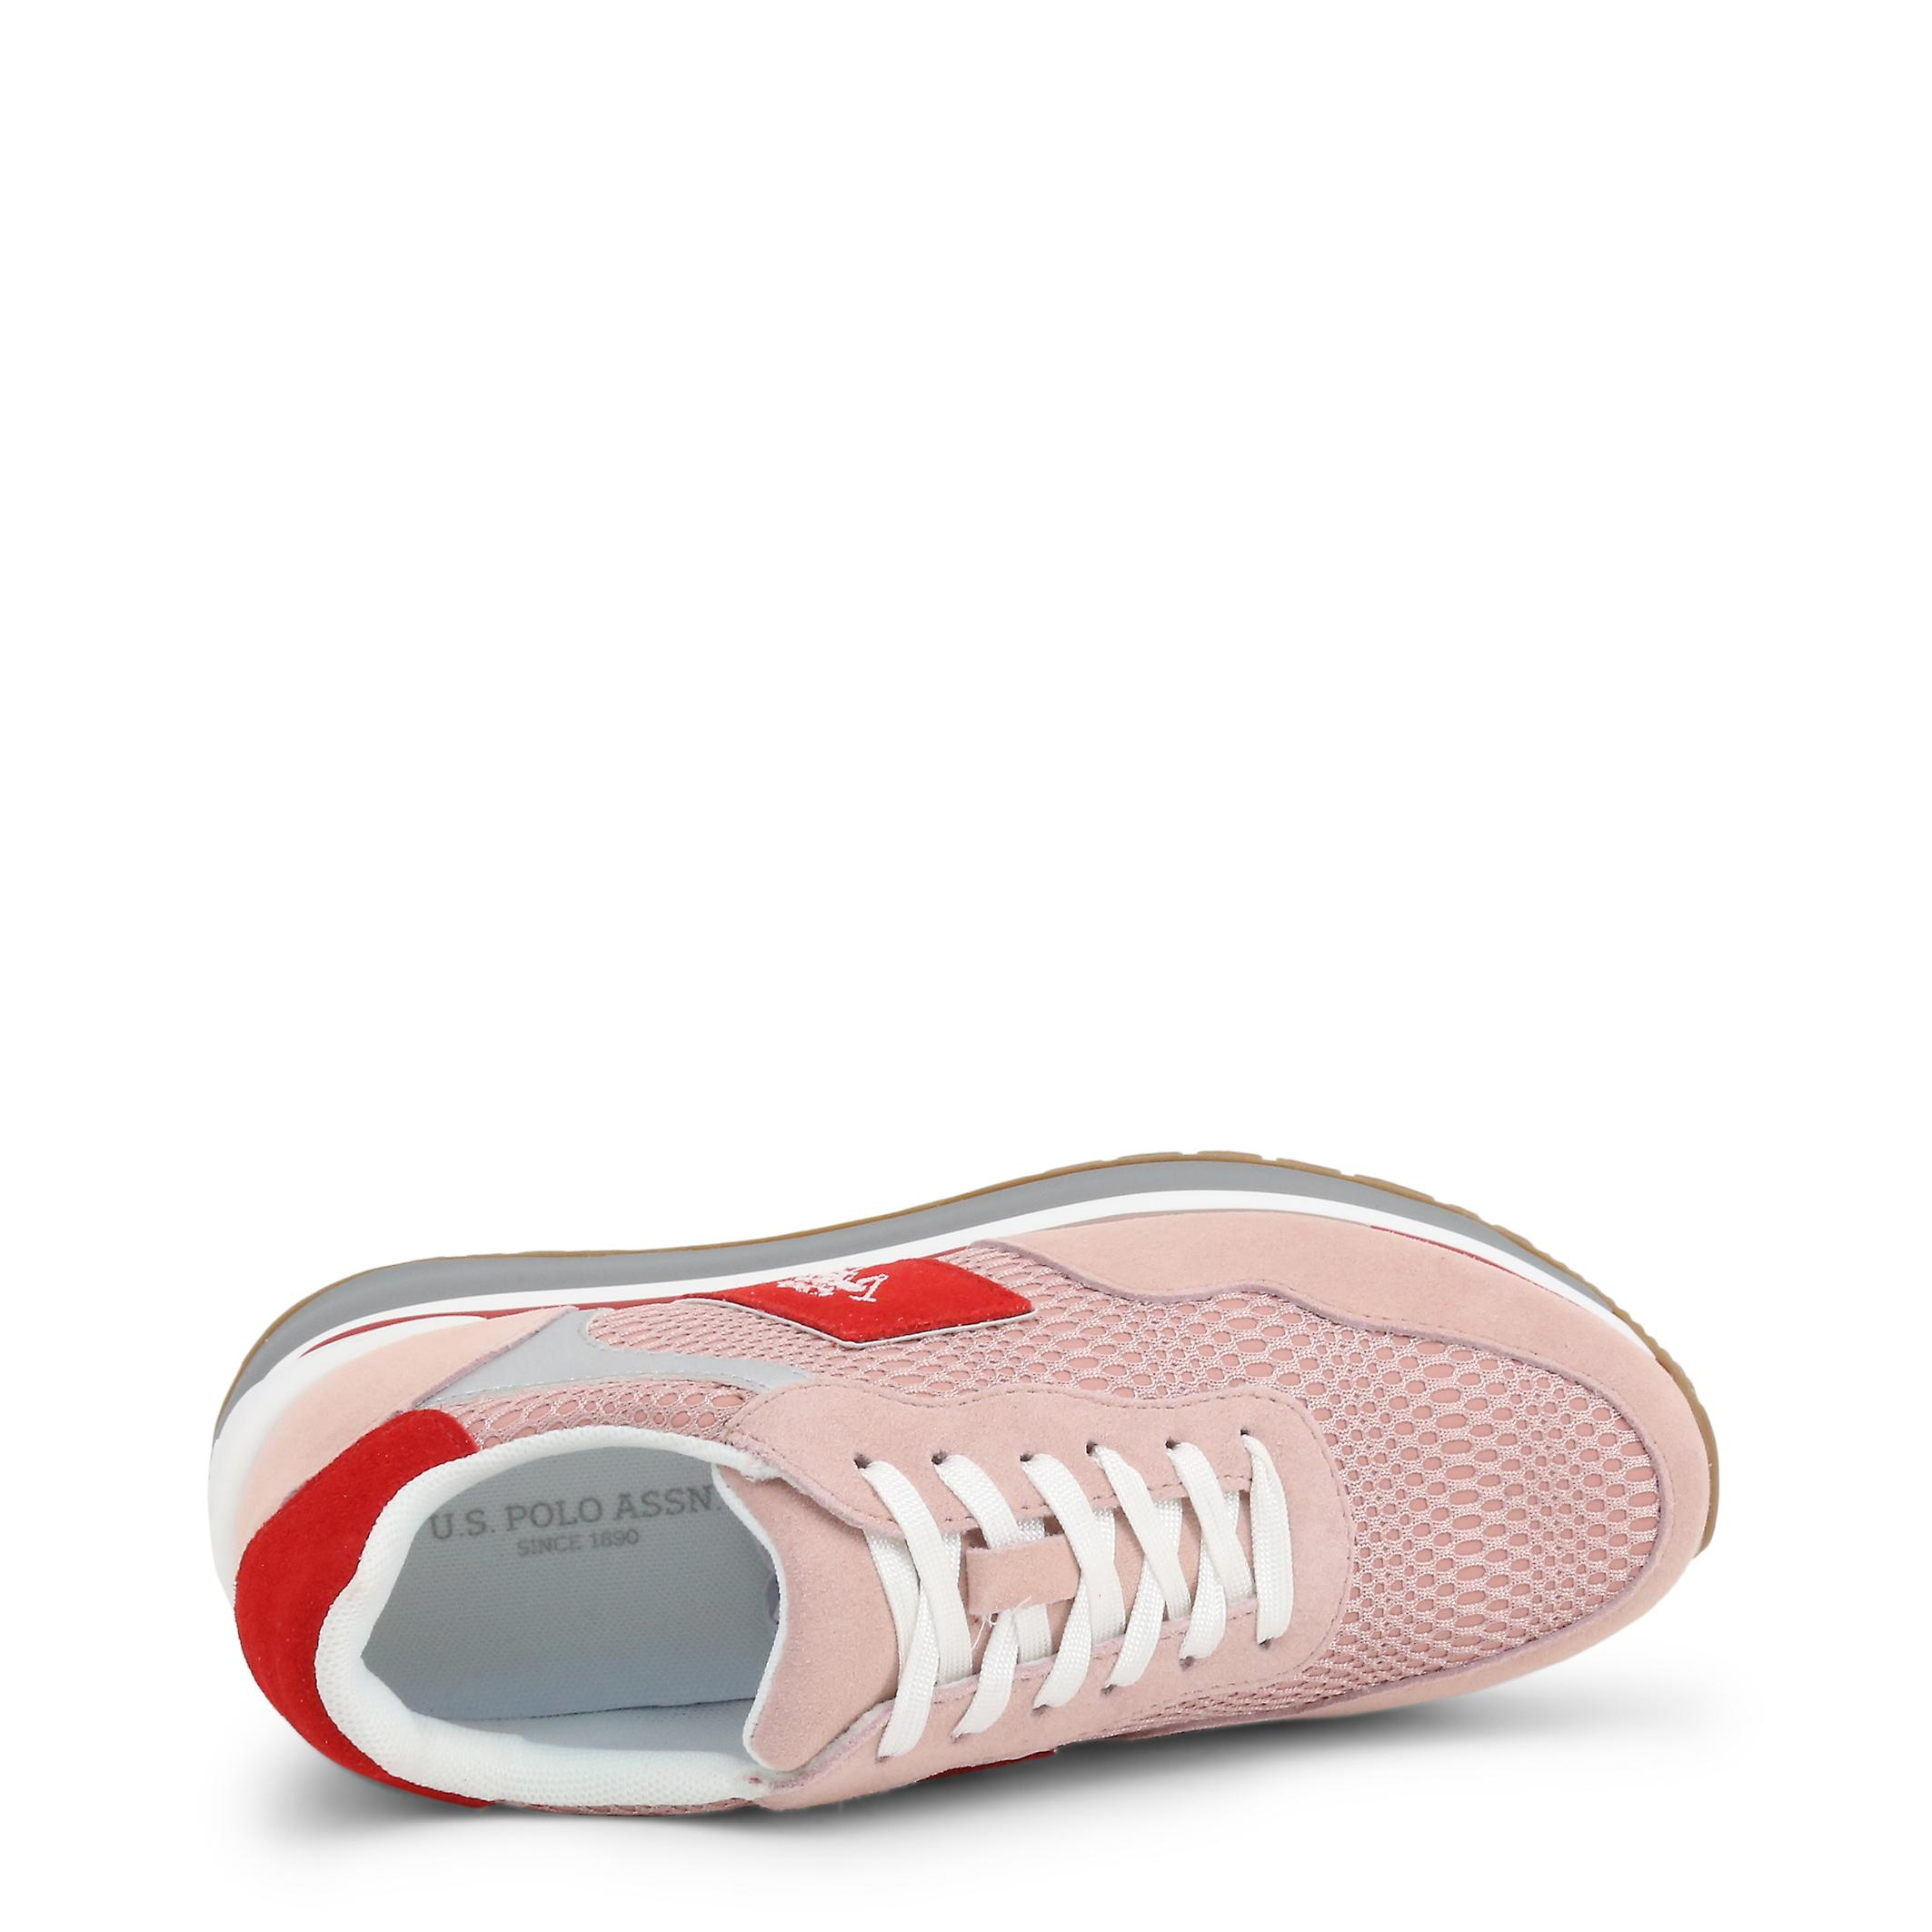 U.S. Polo Assn. Donne Originali Primavera/Estate Sneakers Colore Rosa - 73169